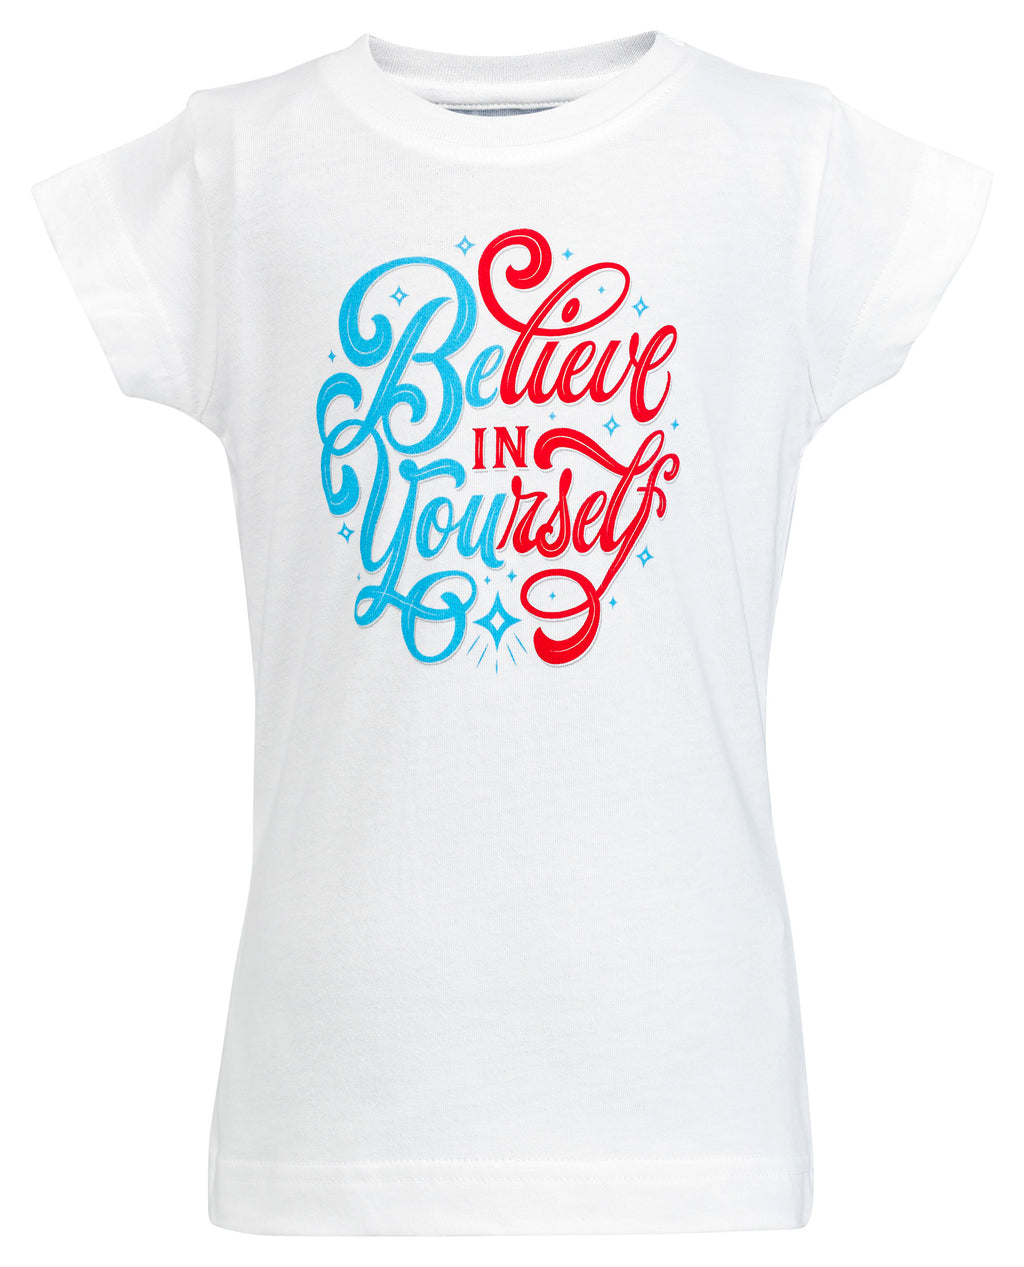 Believe in Yourself Toddler Graphic Tee - White